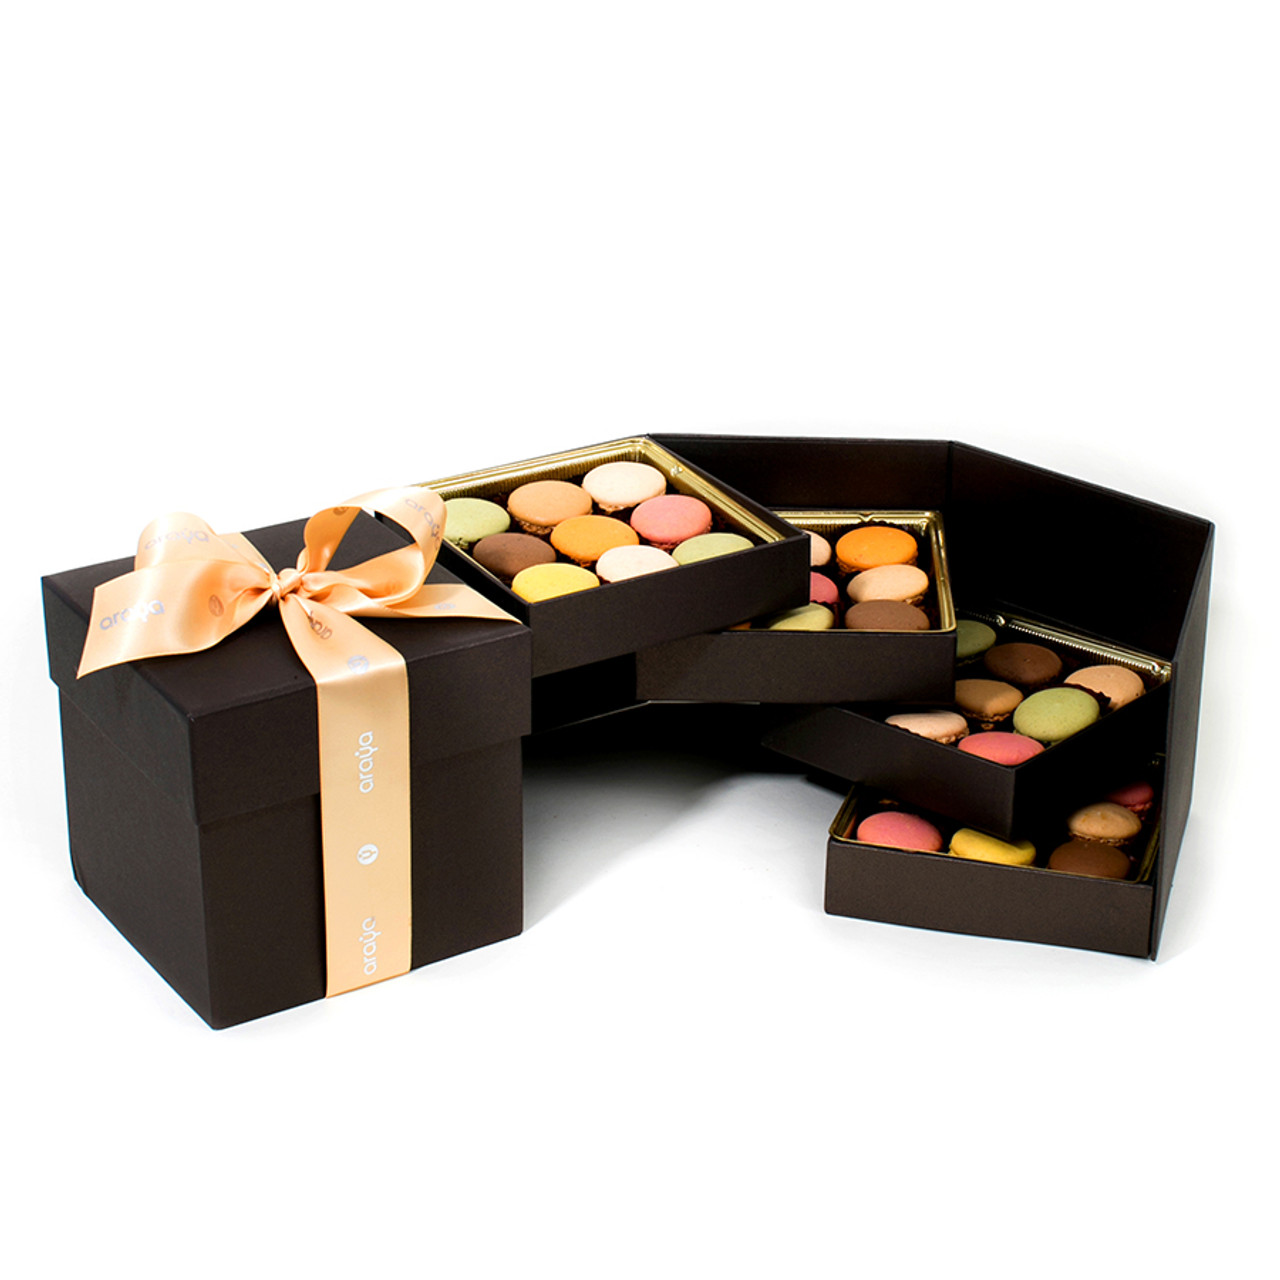 Multilayer 36 Macaron Gift Box -  Available in Red & Bronze